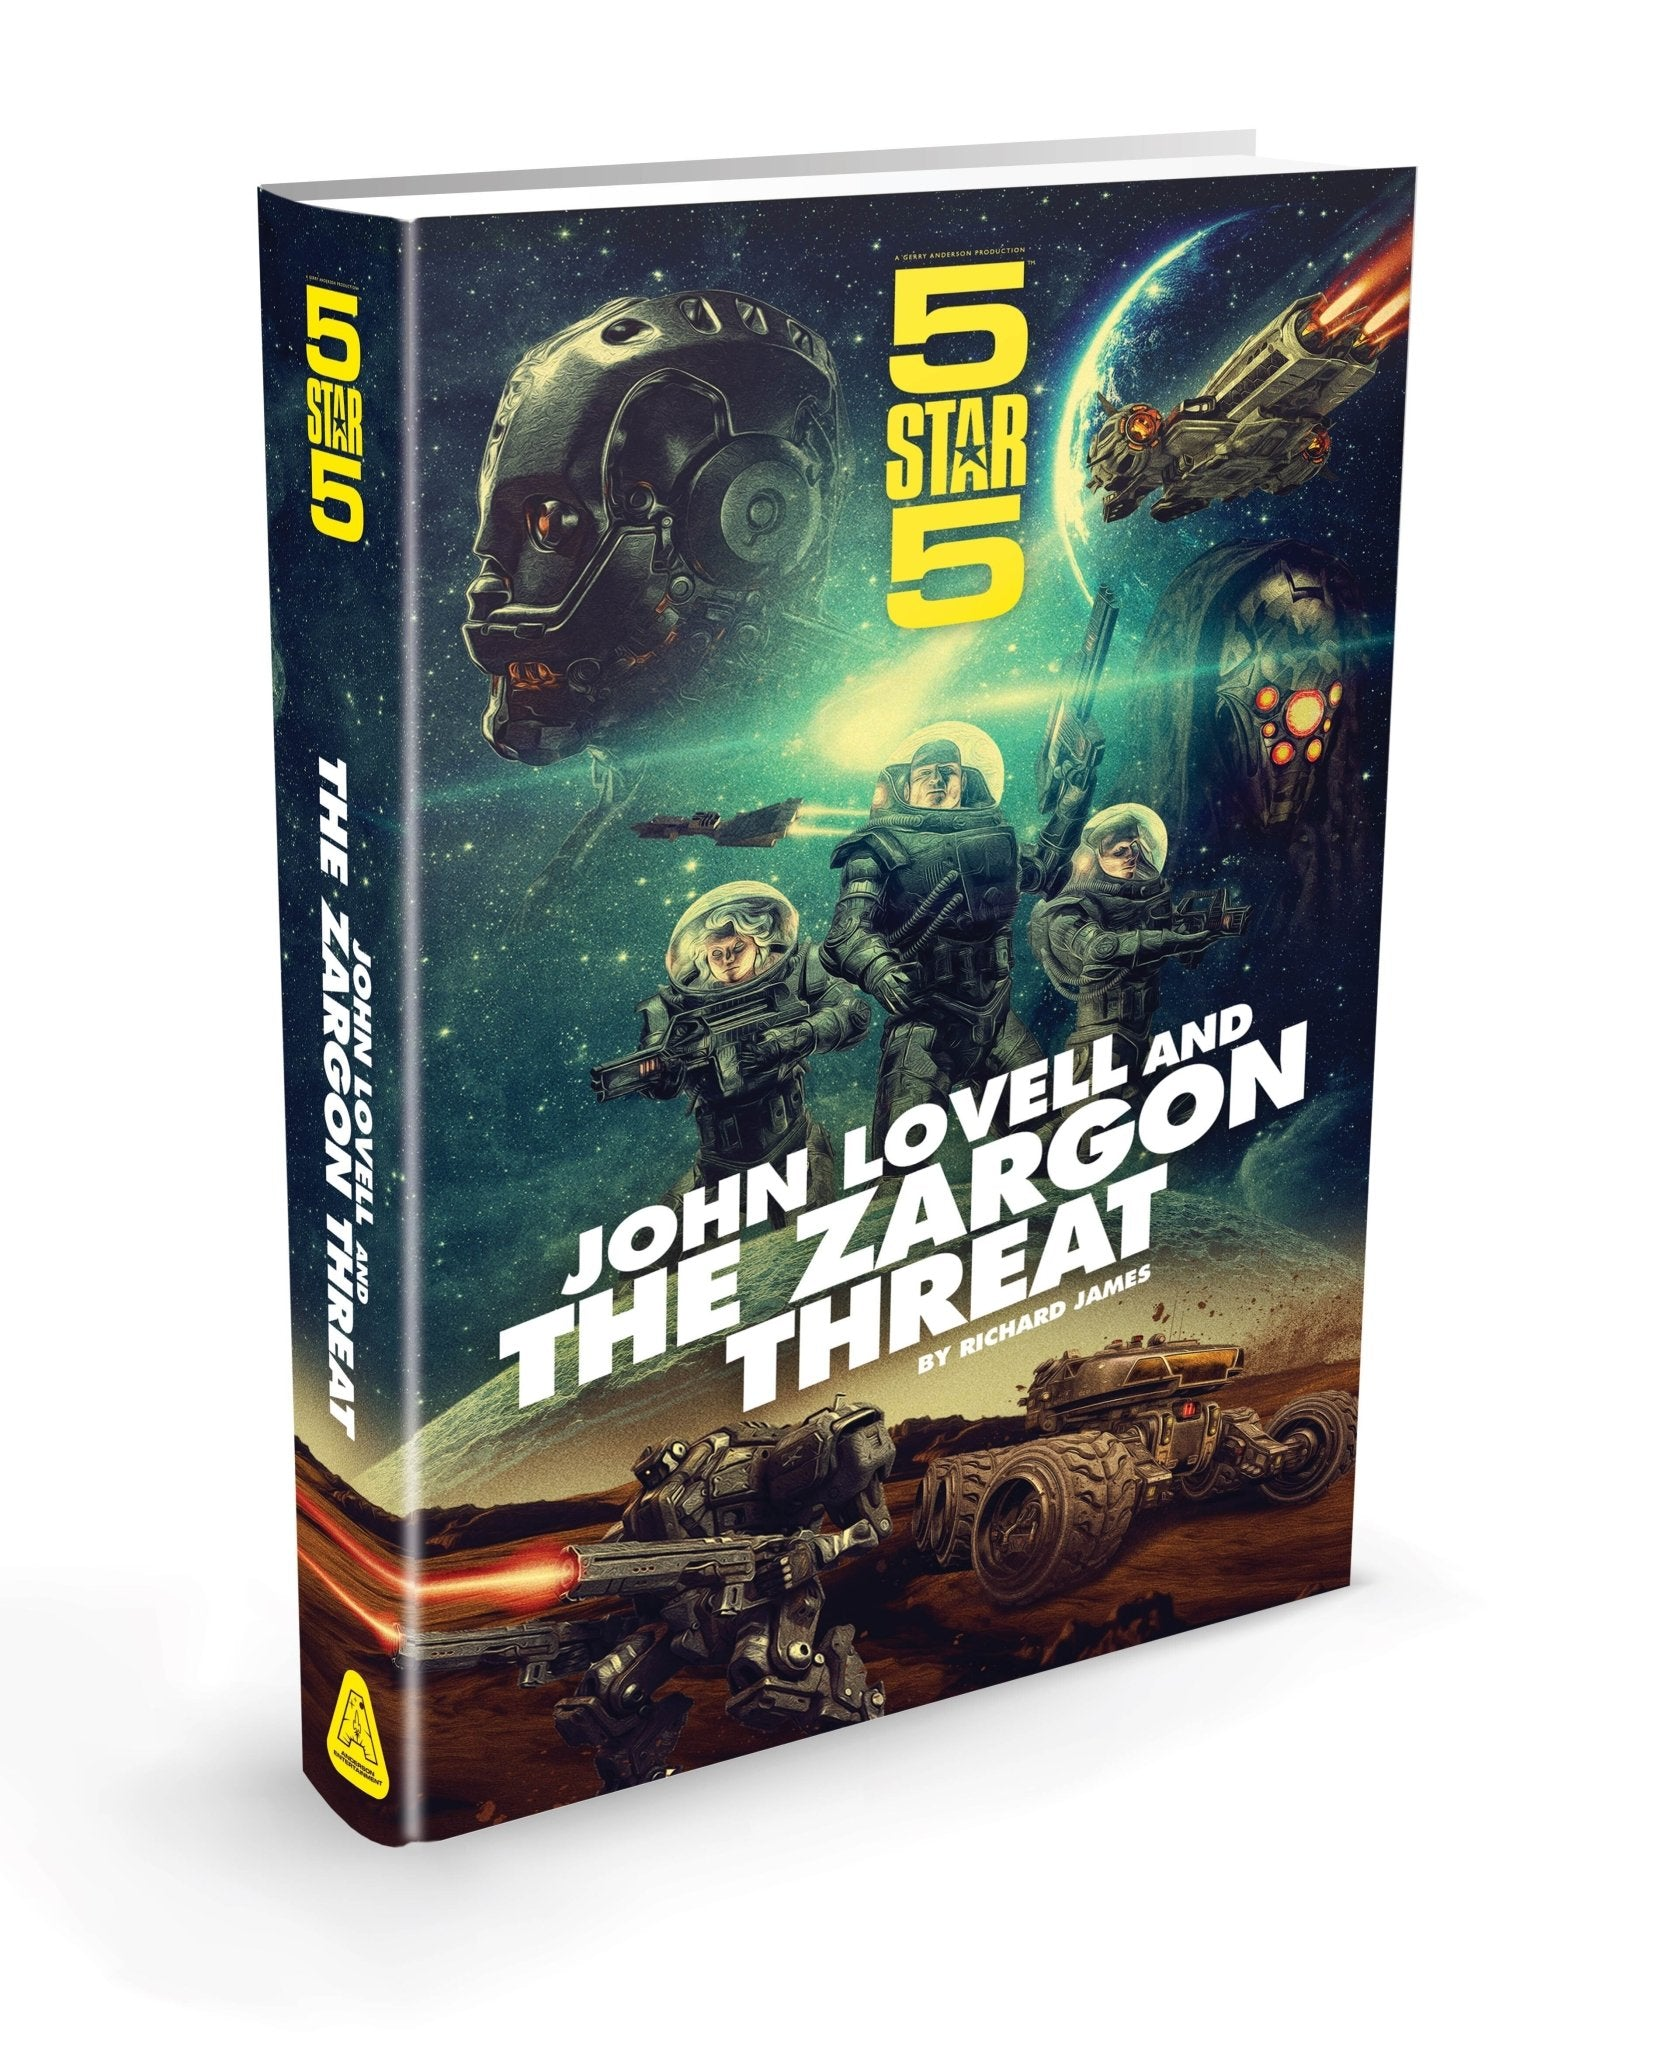 Five Star Five Hardback Book [Official & Exclusive] - The Gerry Anderson Store